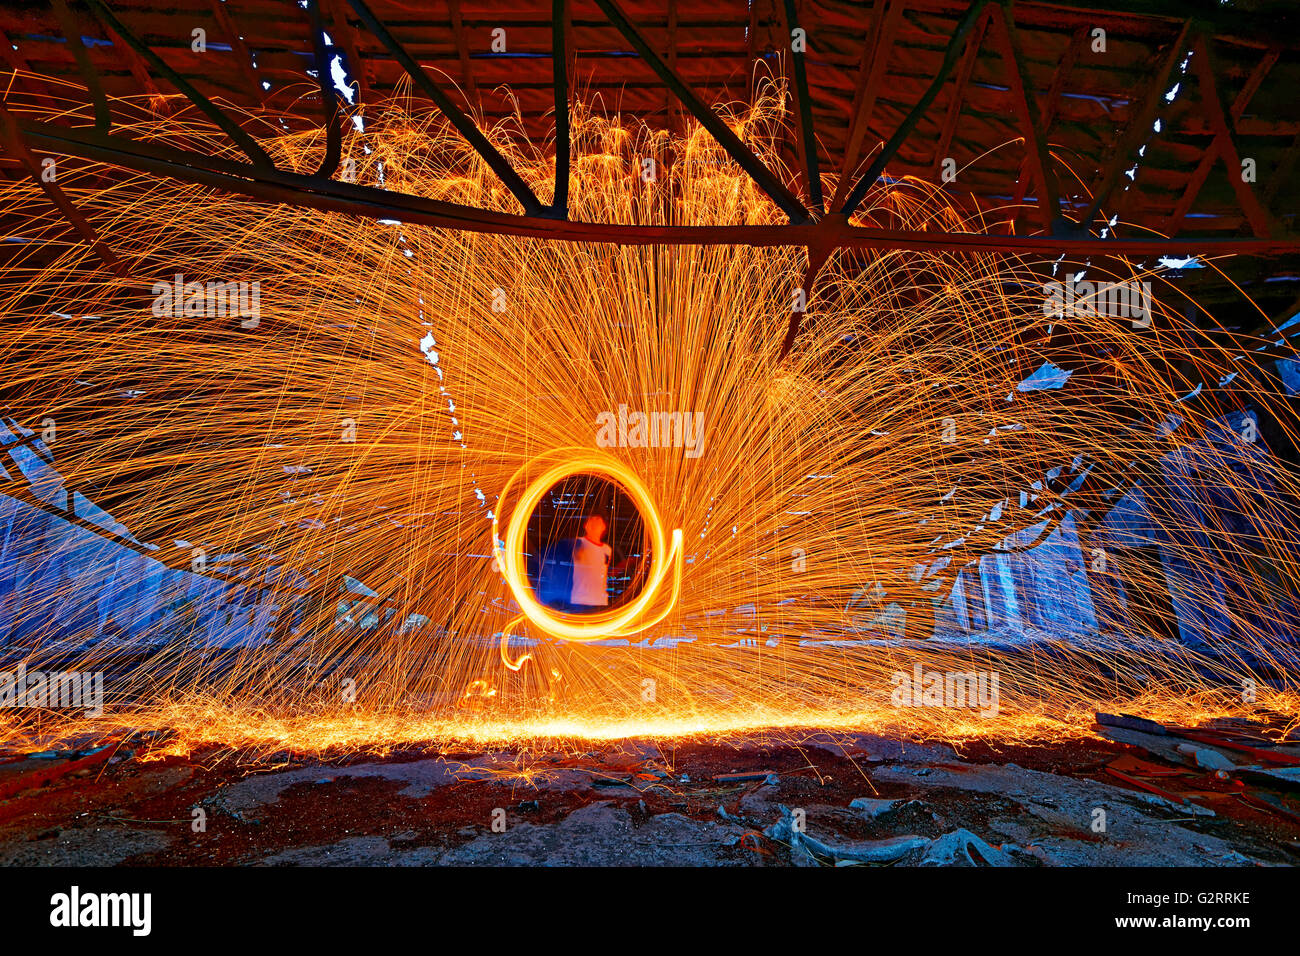 Burning Steel Wool spinning. Showers of glowing sparks from spinning steel wool in ruins Stock Photo